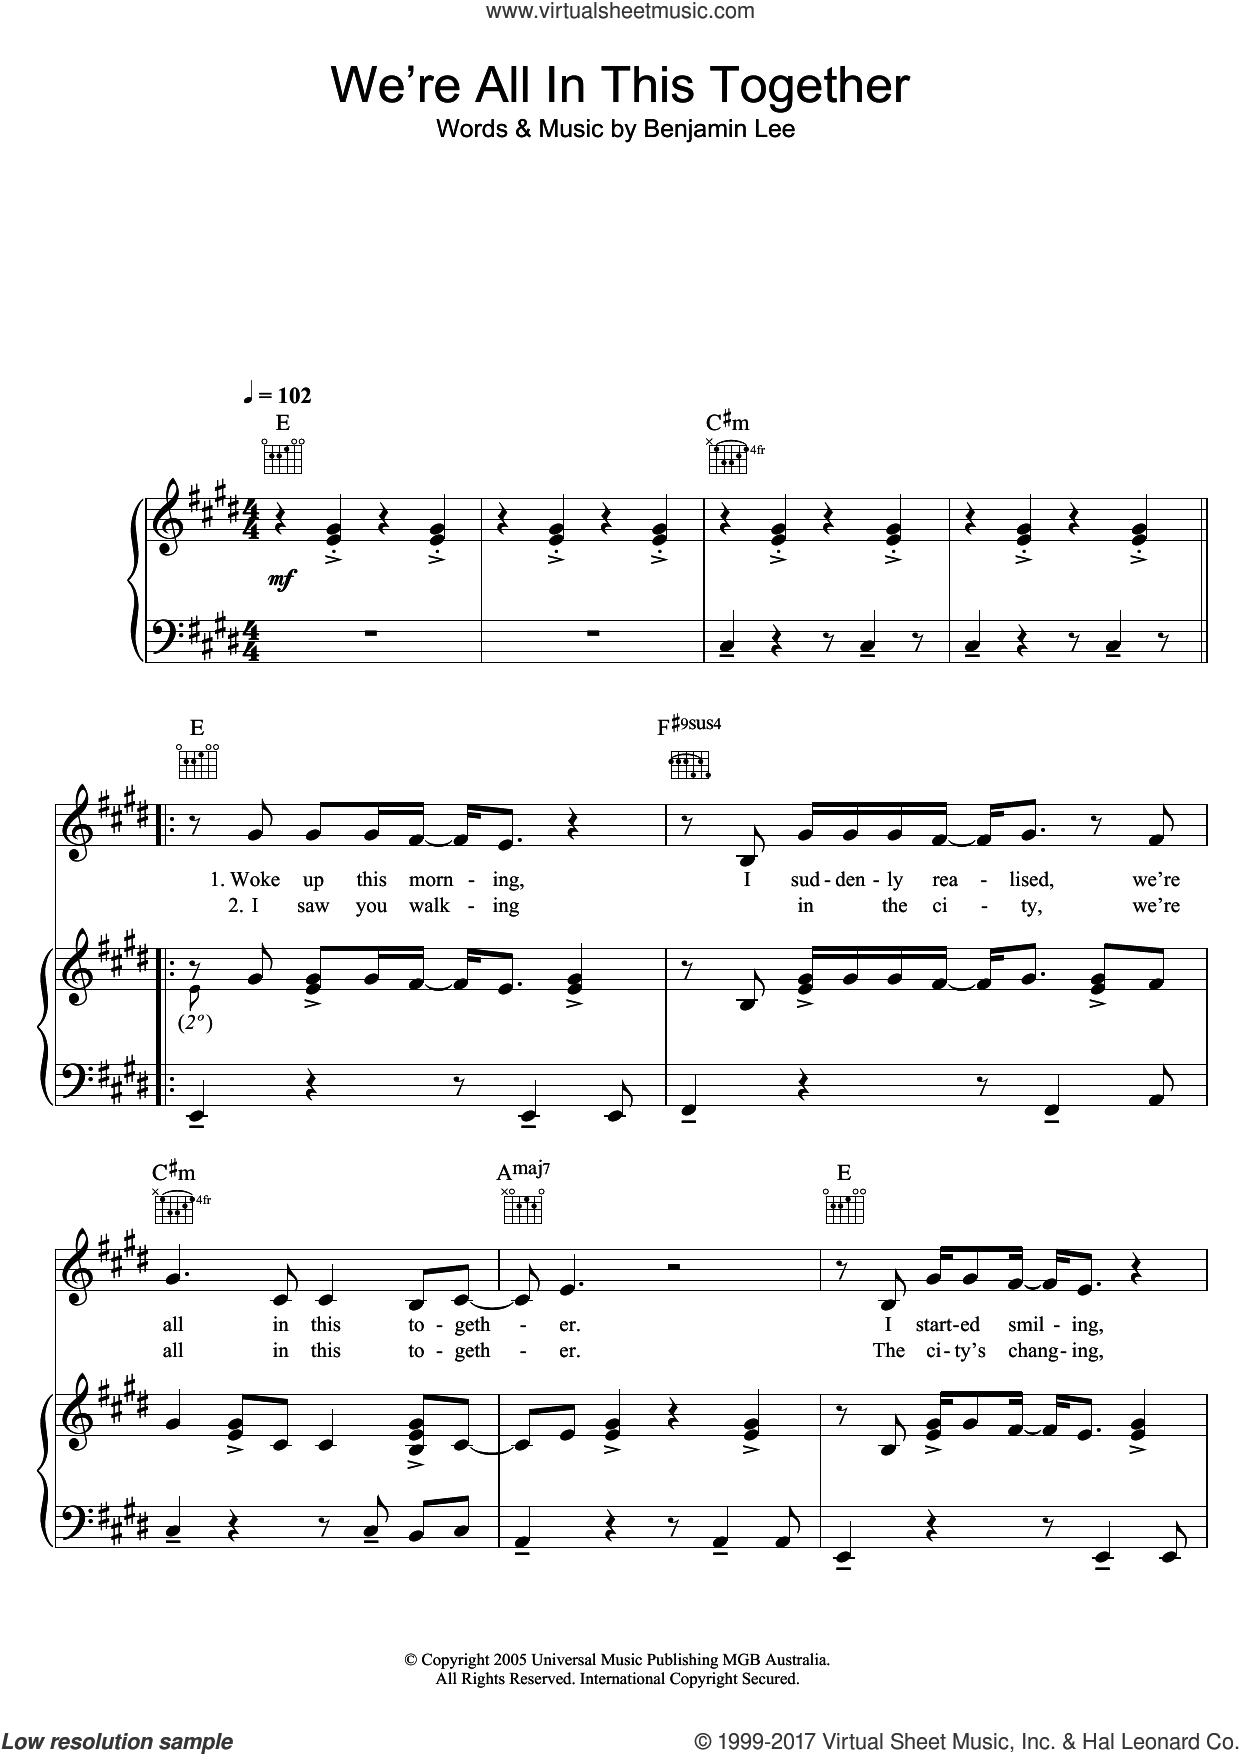 We're All In This Together sheet music for voice, piano or guitar by Ben Lee and Benjamin Lee, intermediate skill level